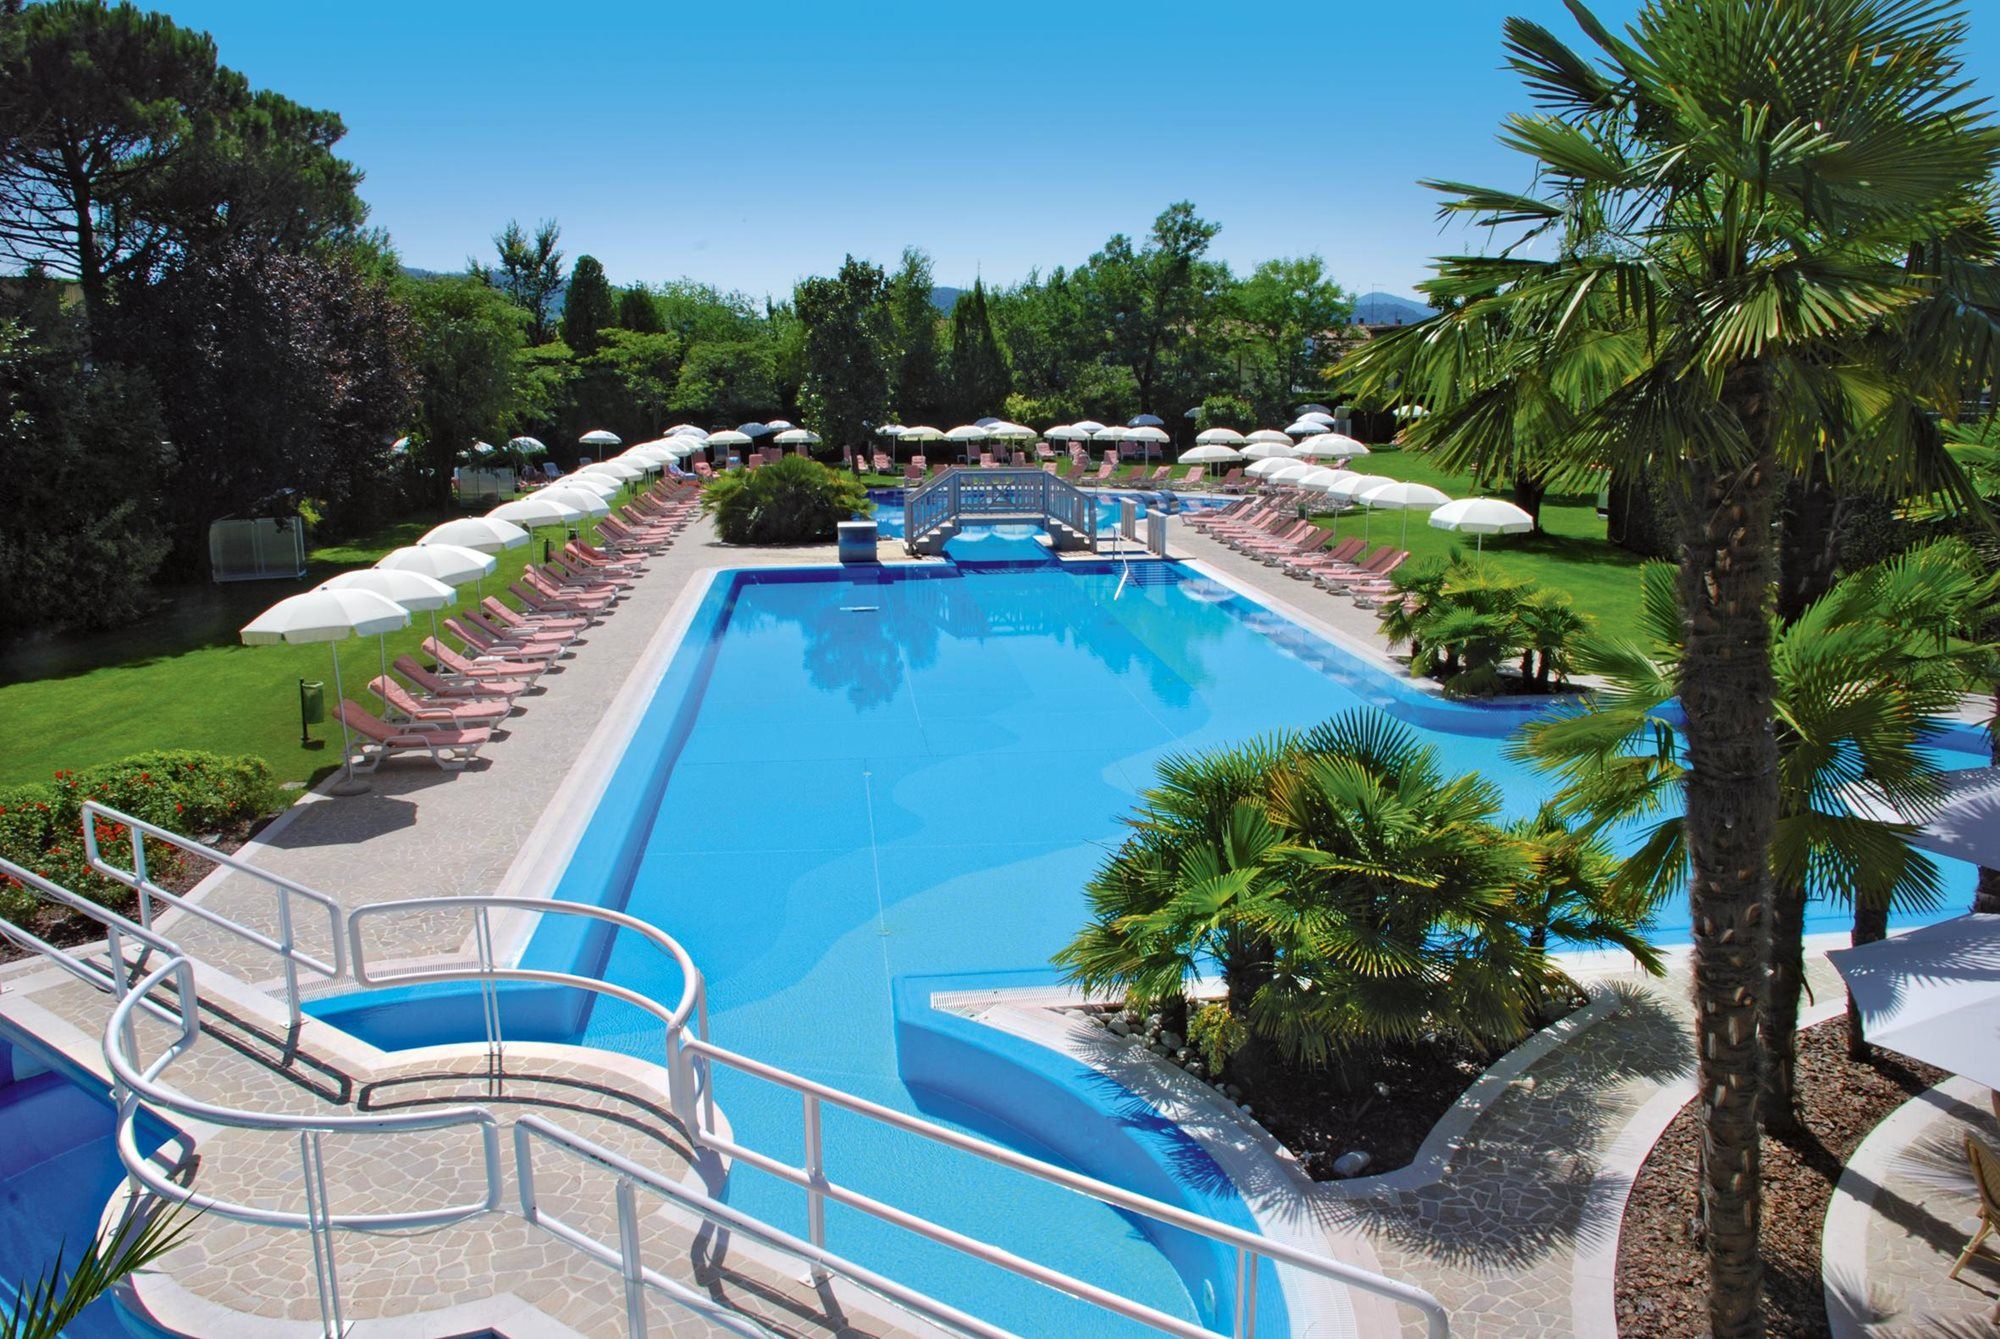 Ermitage bel air medical hotel in Italy, fasting for arthritis with SpaDreams, swimming pool